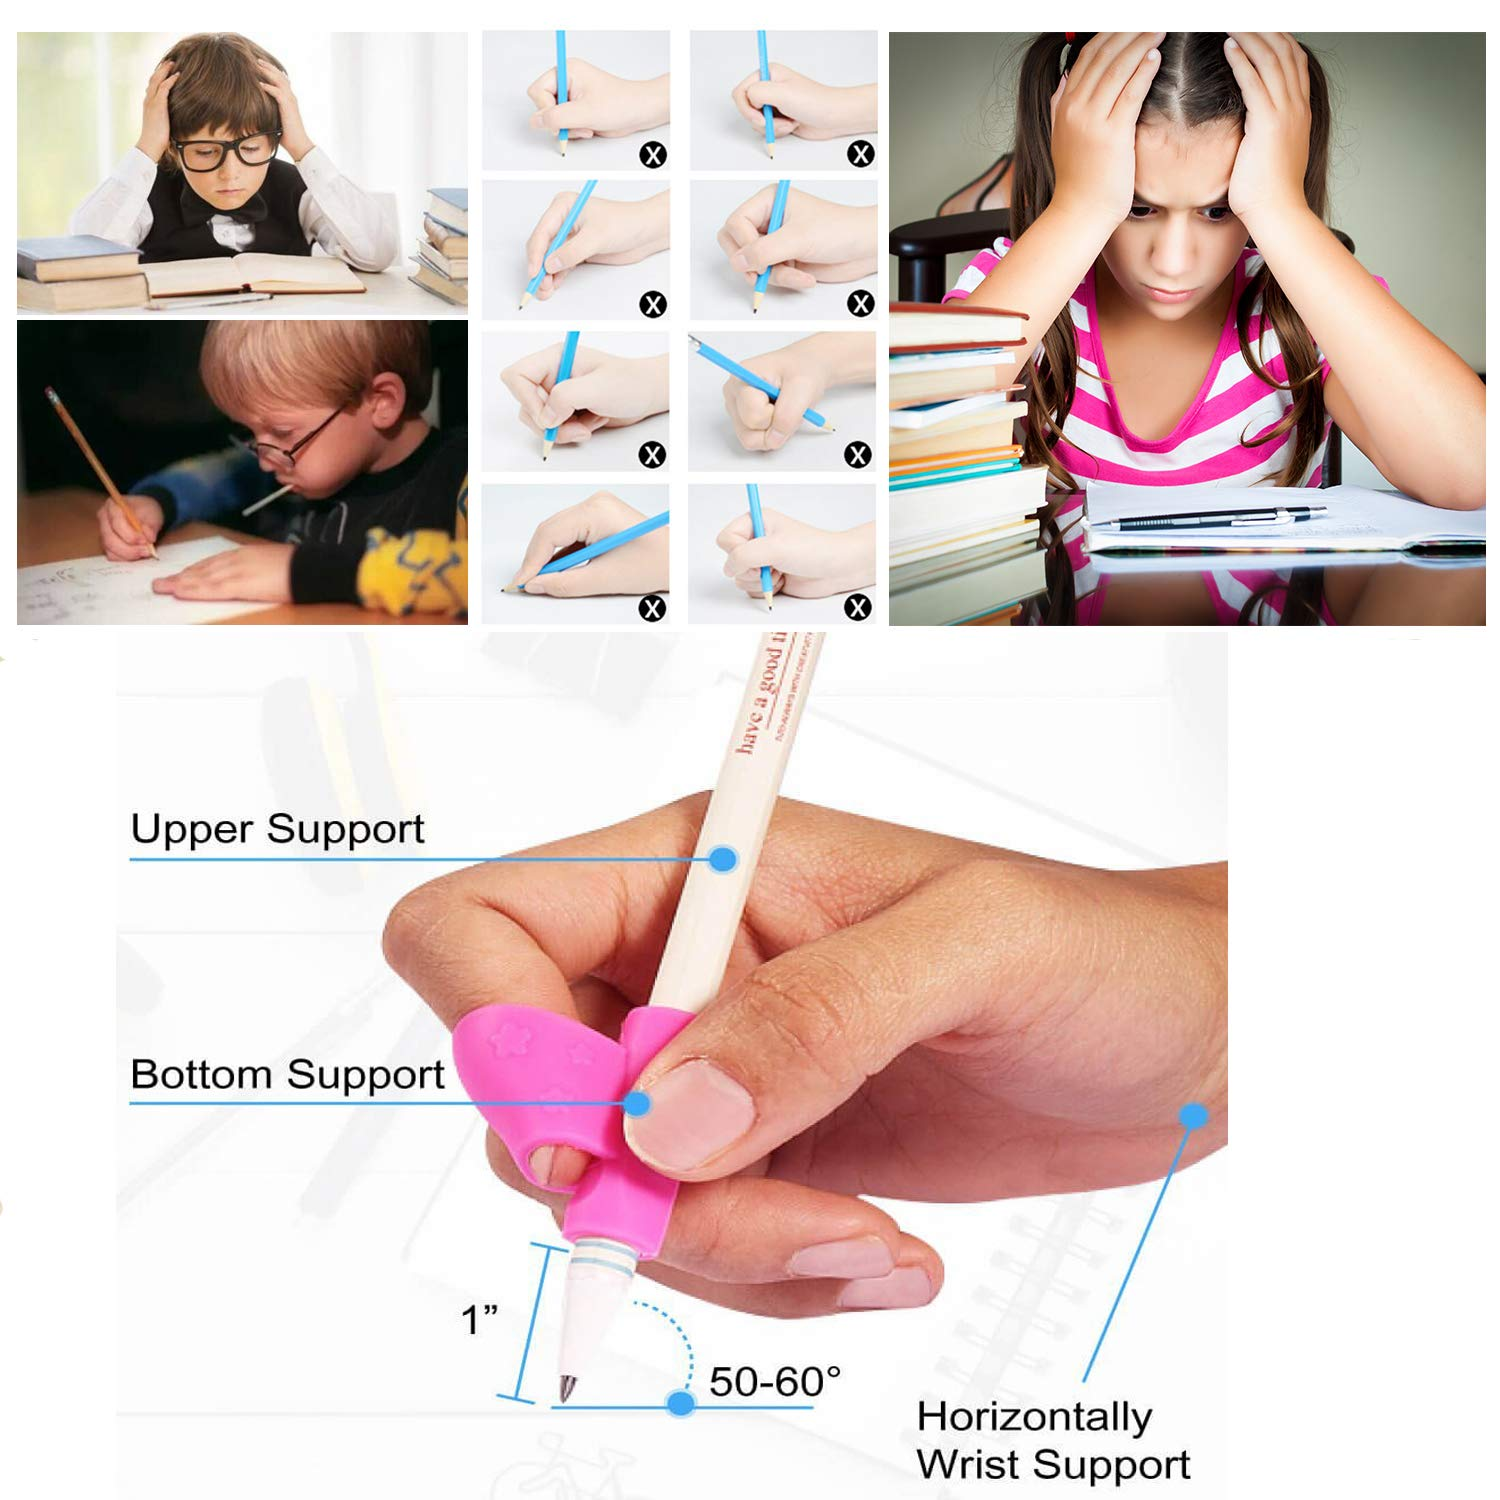 Pencil Writing Grips for Kids Handwriting 20 Pack Pencil Holder Utensils Pen Writing Aid Grip Posture Correction Tool with Comfortable Ergonomic Writing by Bomach (Image #5)